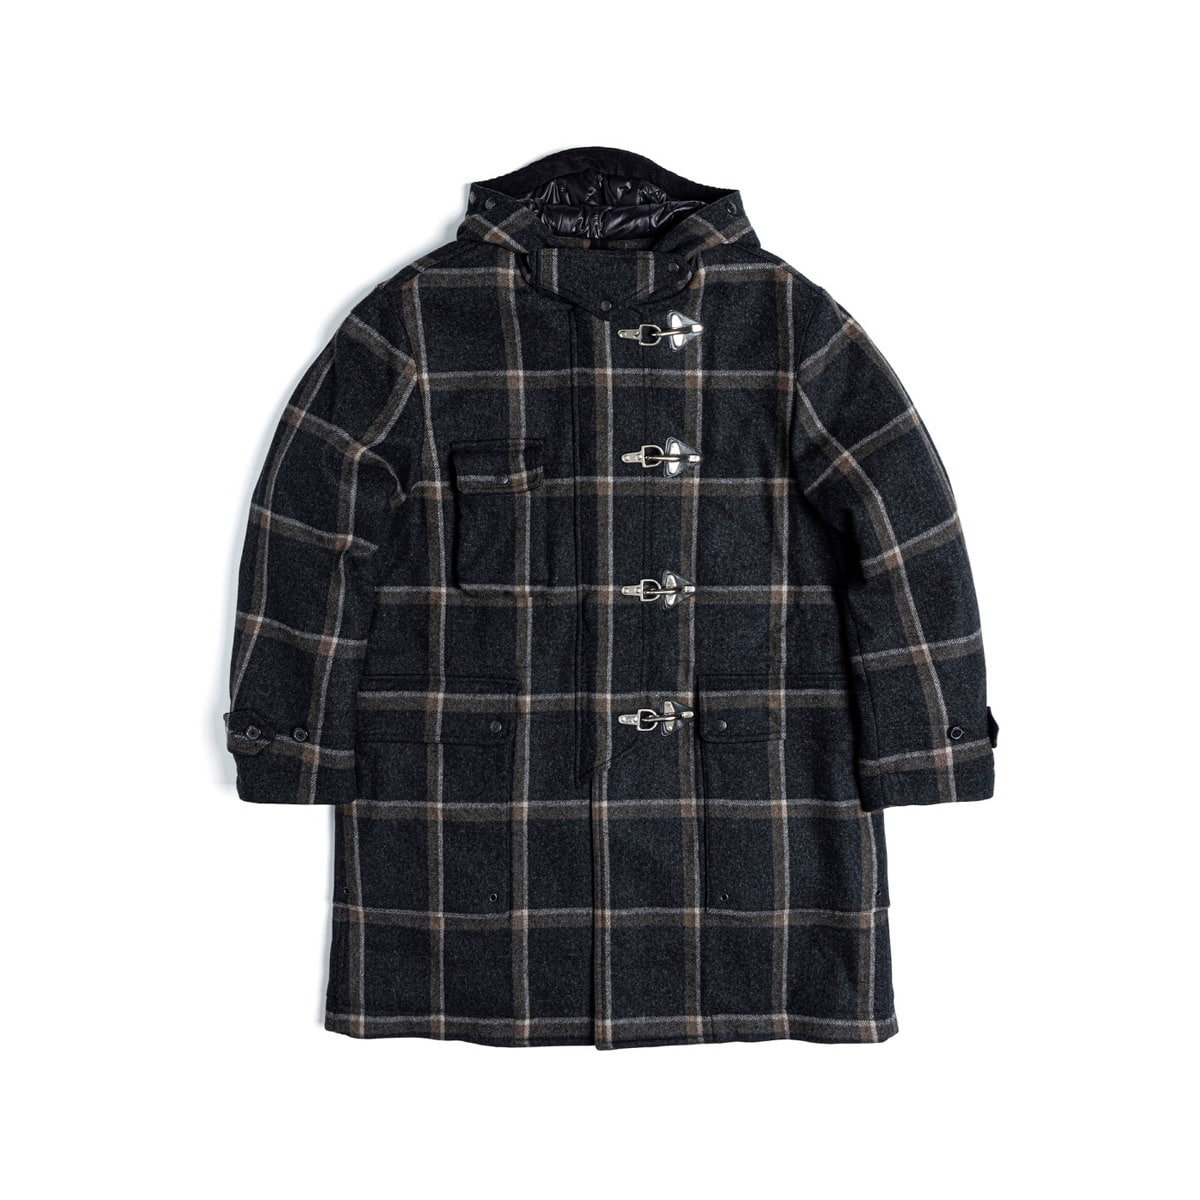 [EASTLOGUE] FIREMAN COAT 'BLACK WINDOWPANE'